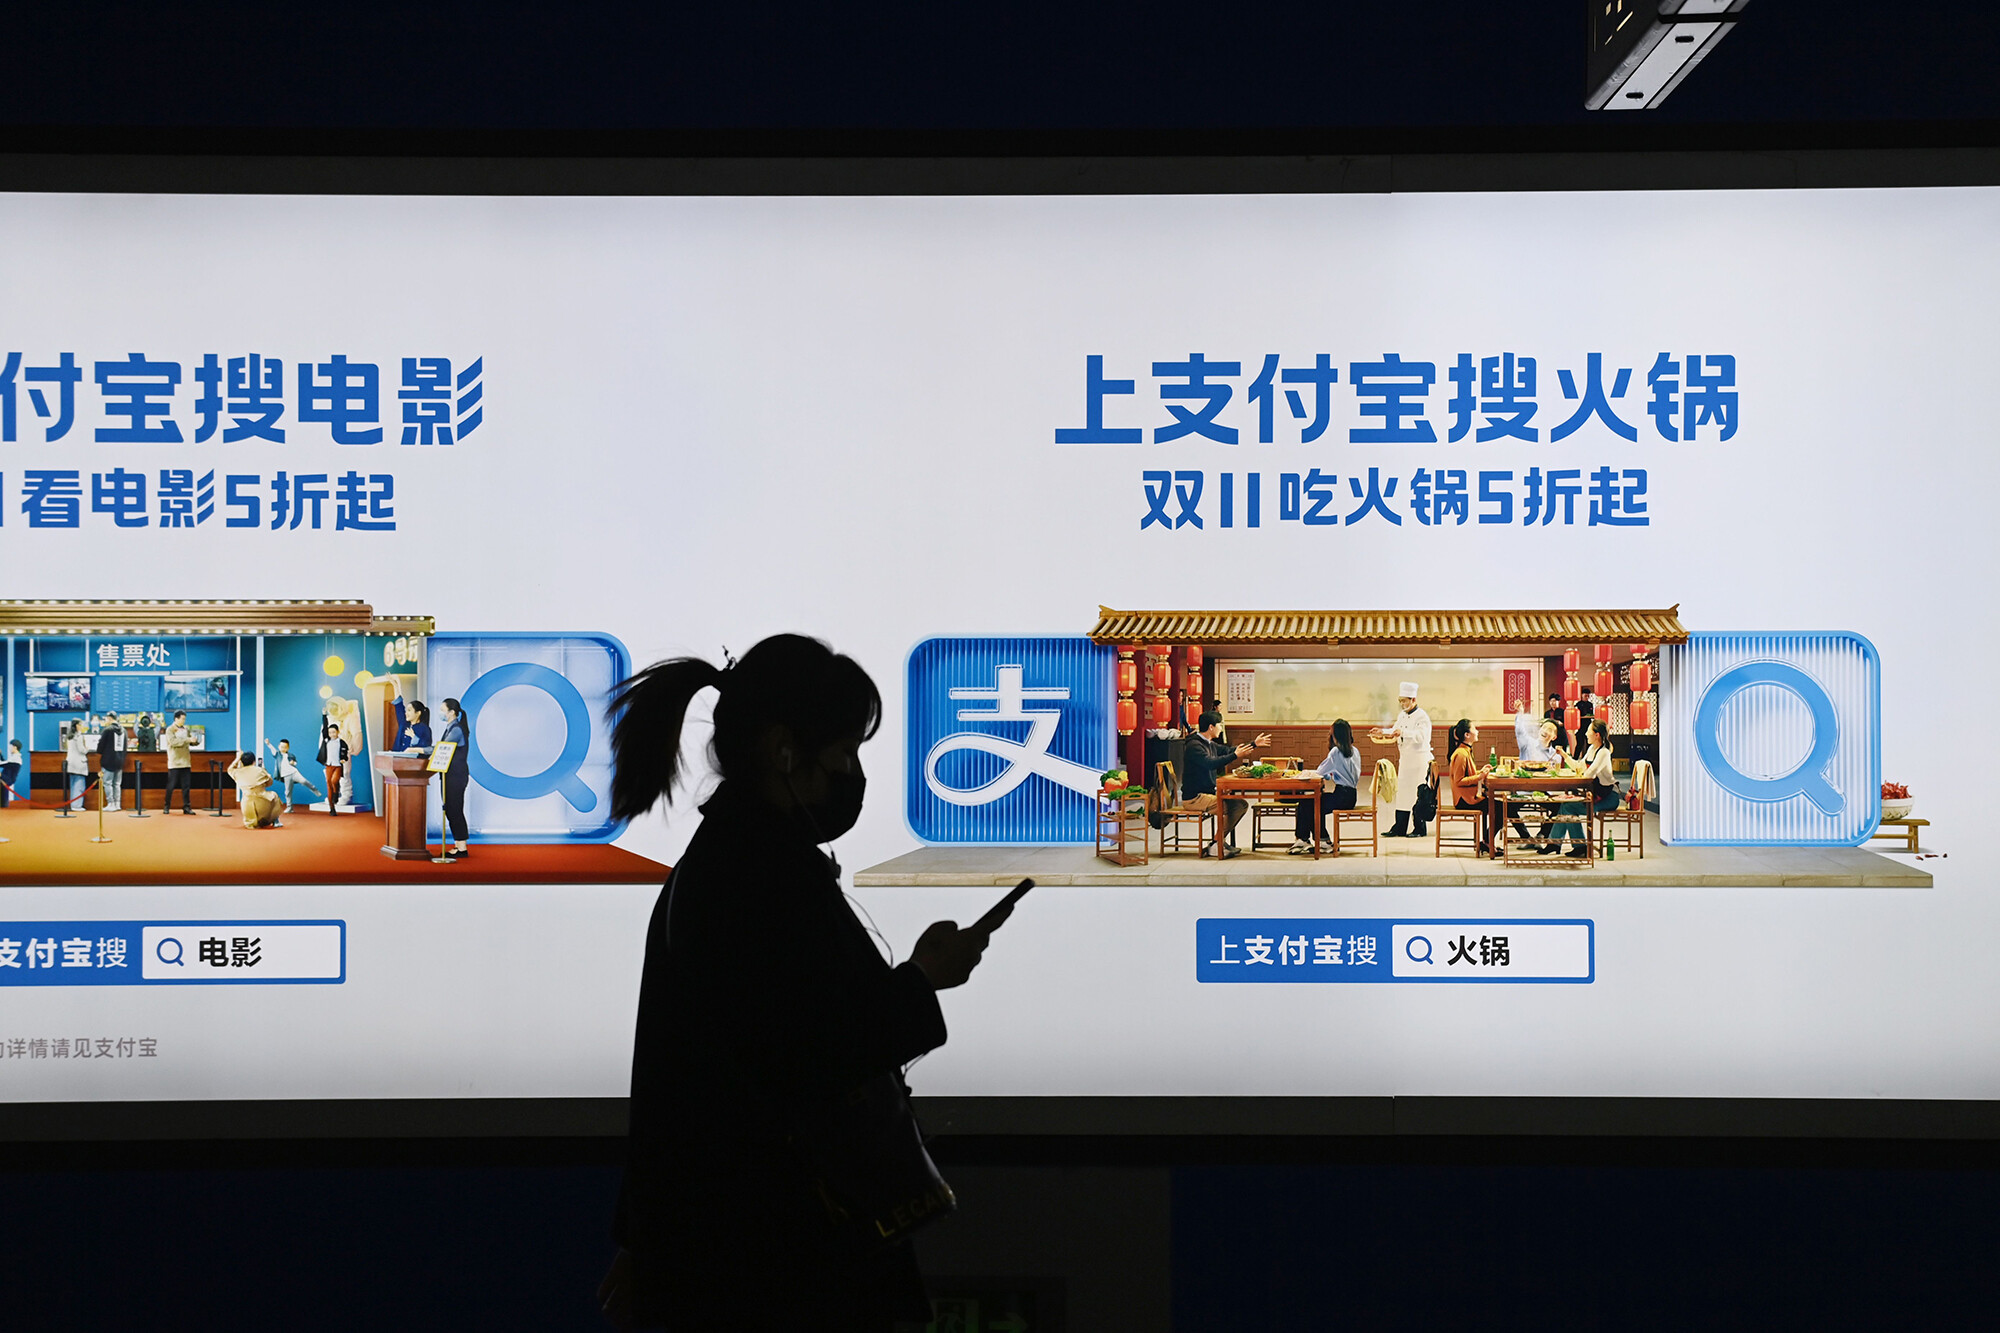 Alibaba stock tumbles after report says Beijing wants to break up Alipay